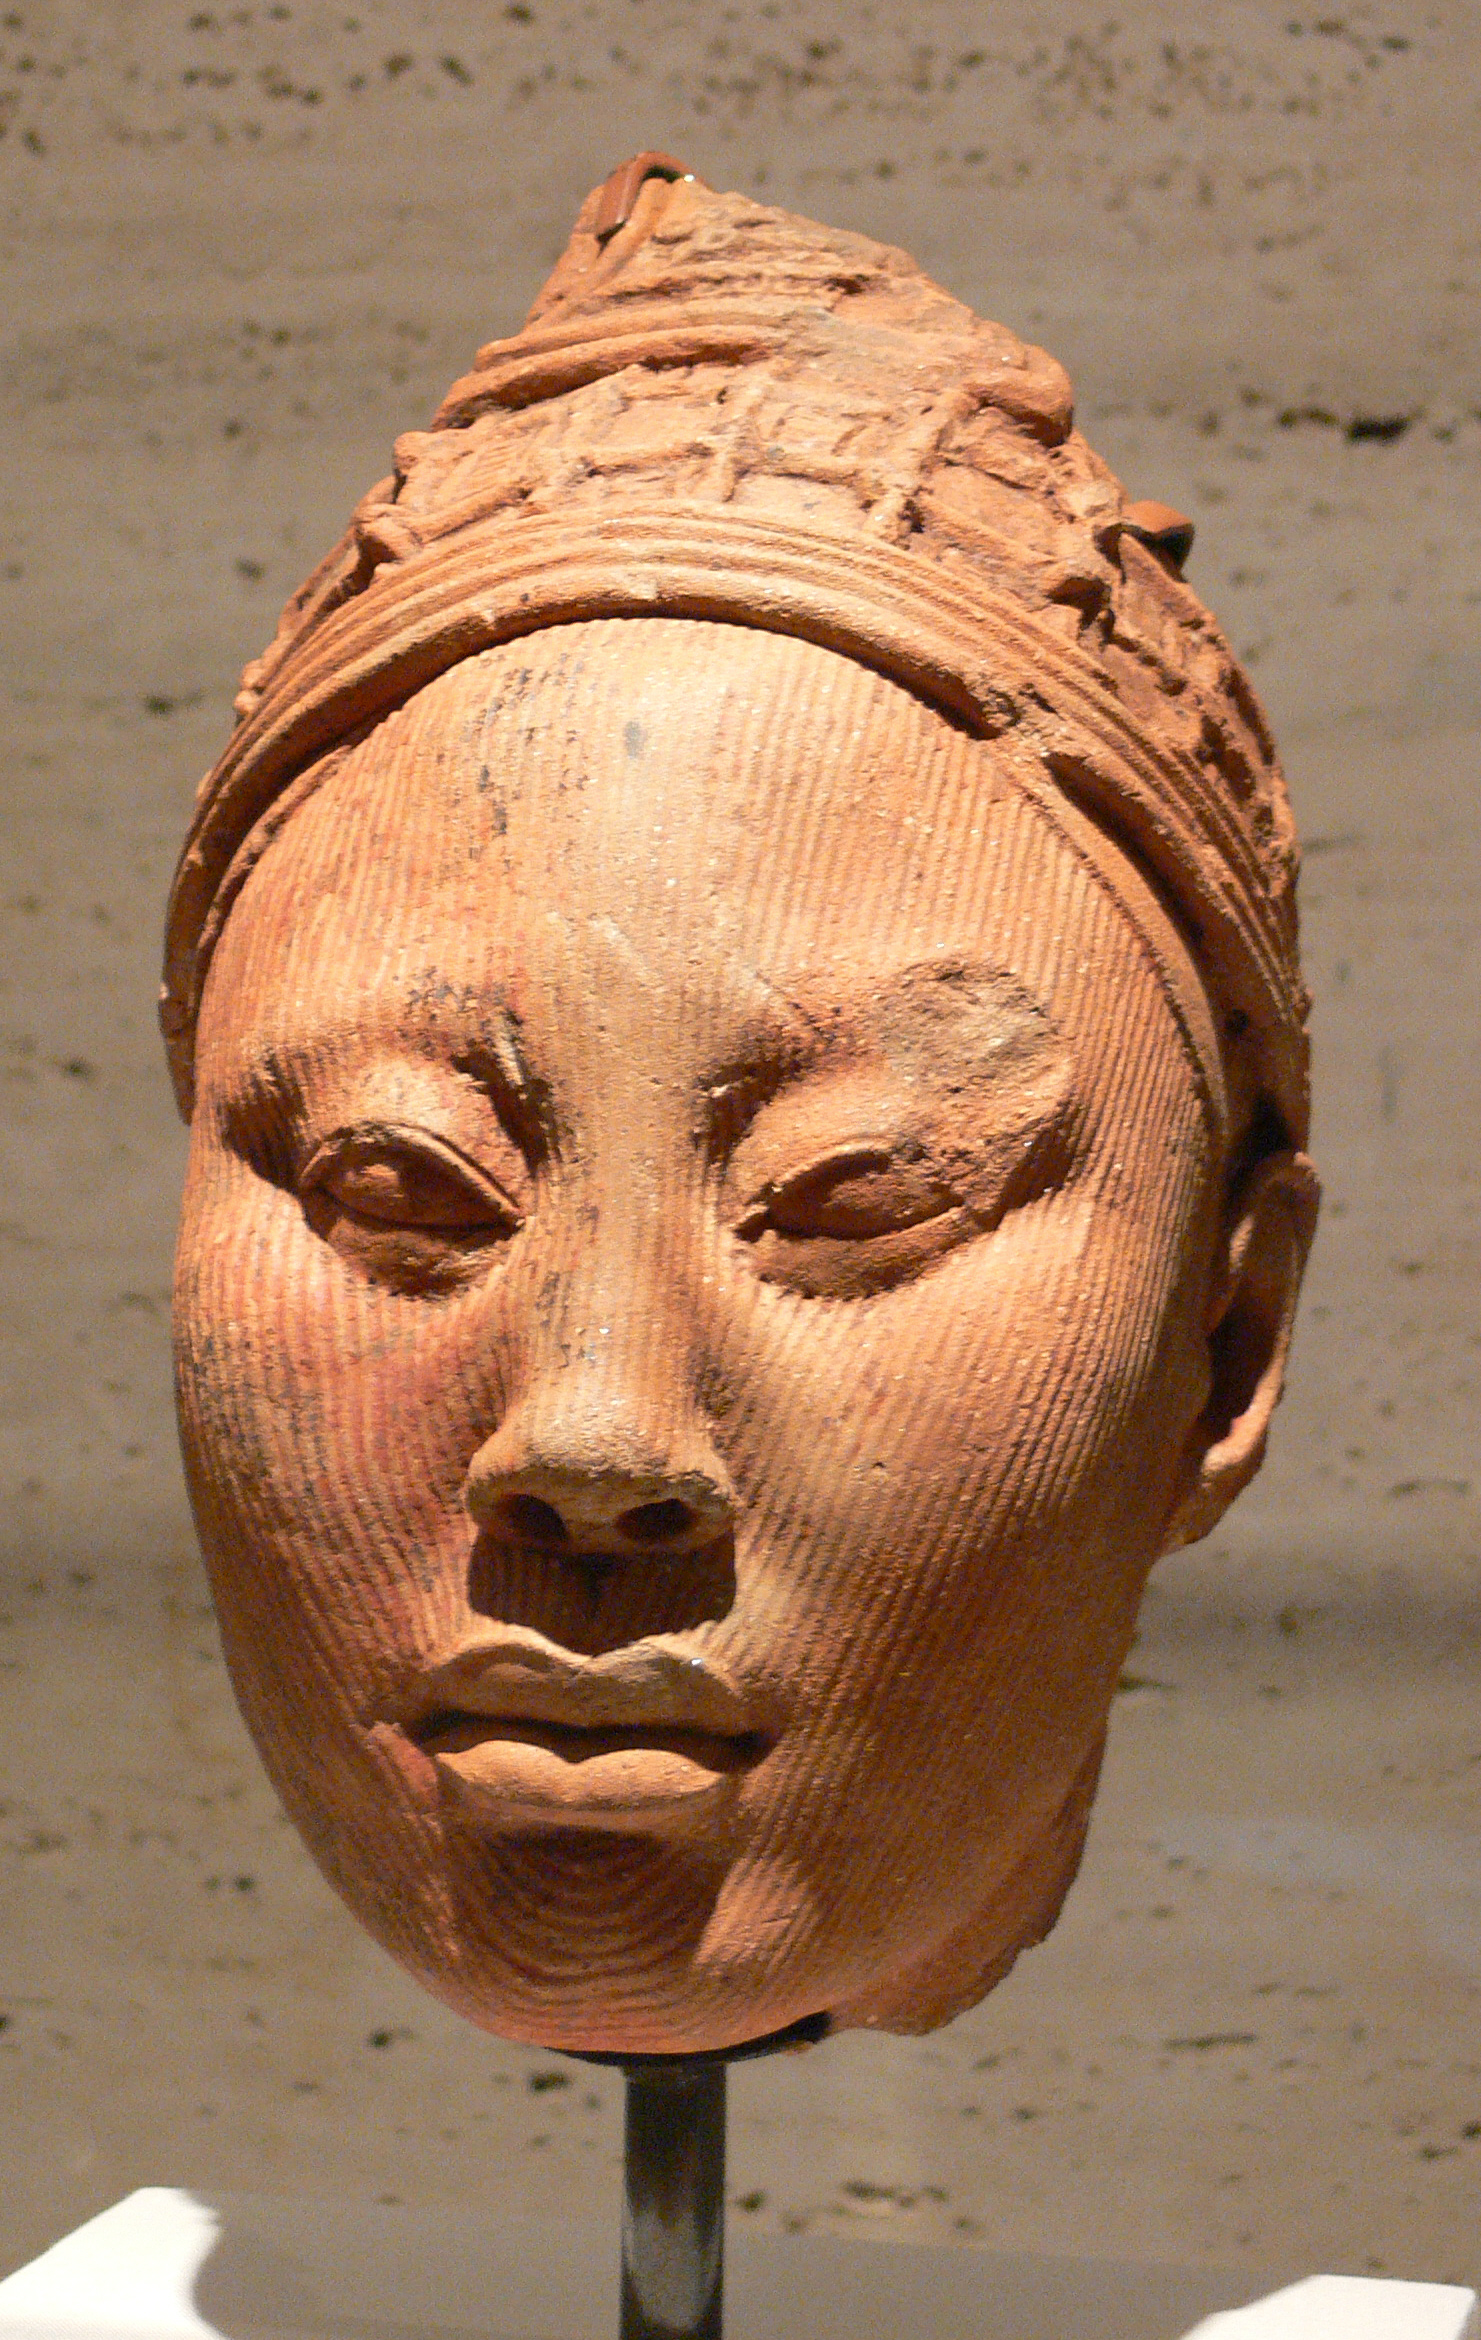 art in yoruba If yoruba art is to be fully analysed and appreciated, it is very important to understand the yoruba position on certain philosophical issues.